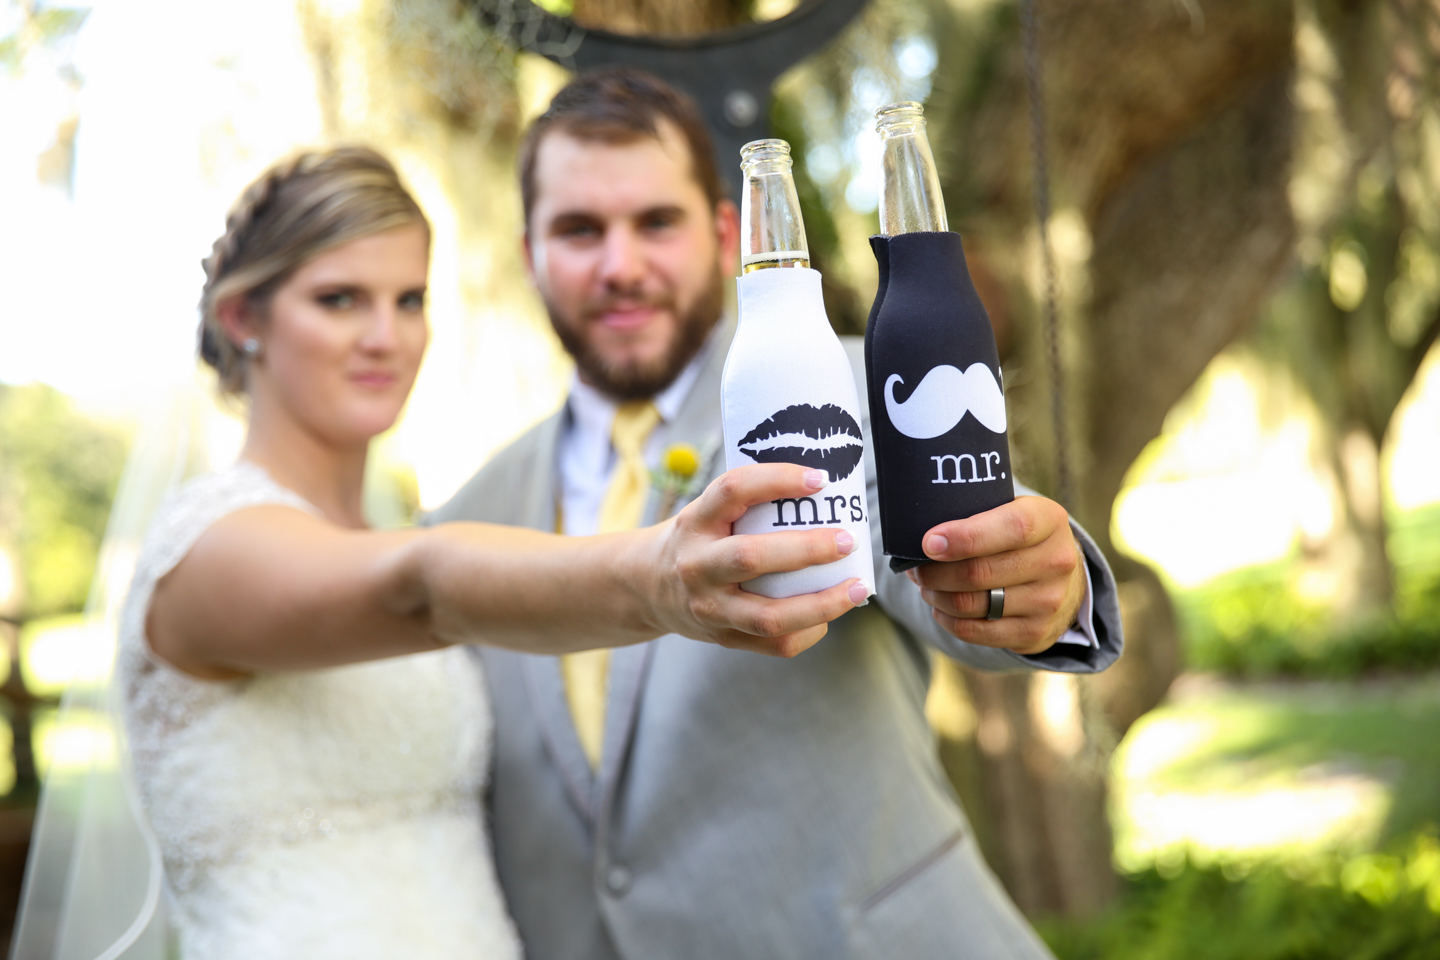 www.livehappystudio.com-wedding-photographer-orlando-fun-candid-portrait-coozies-custom-mrs-mr-bride-groom-15.jpg